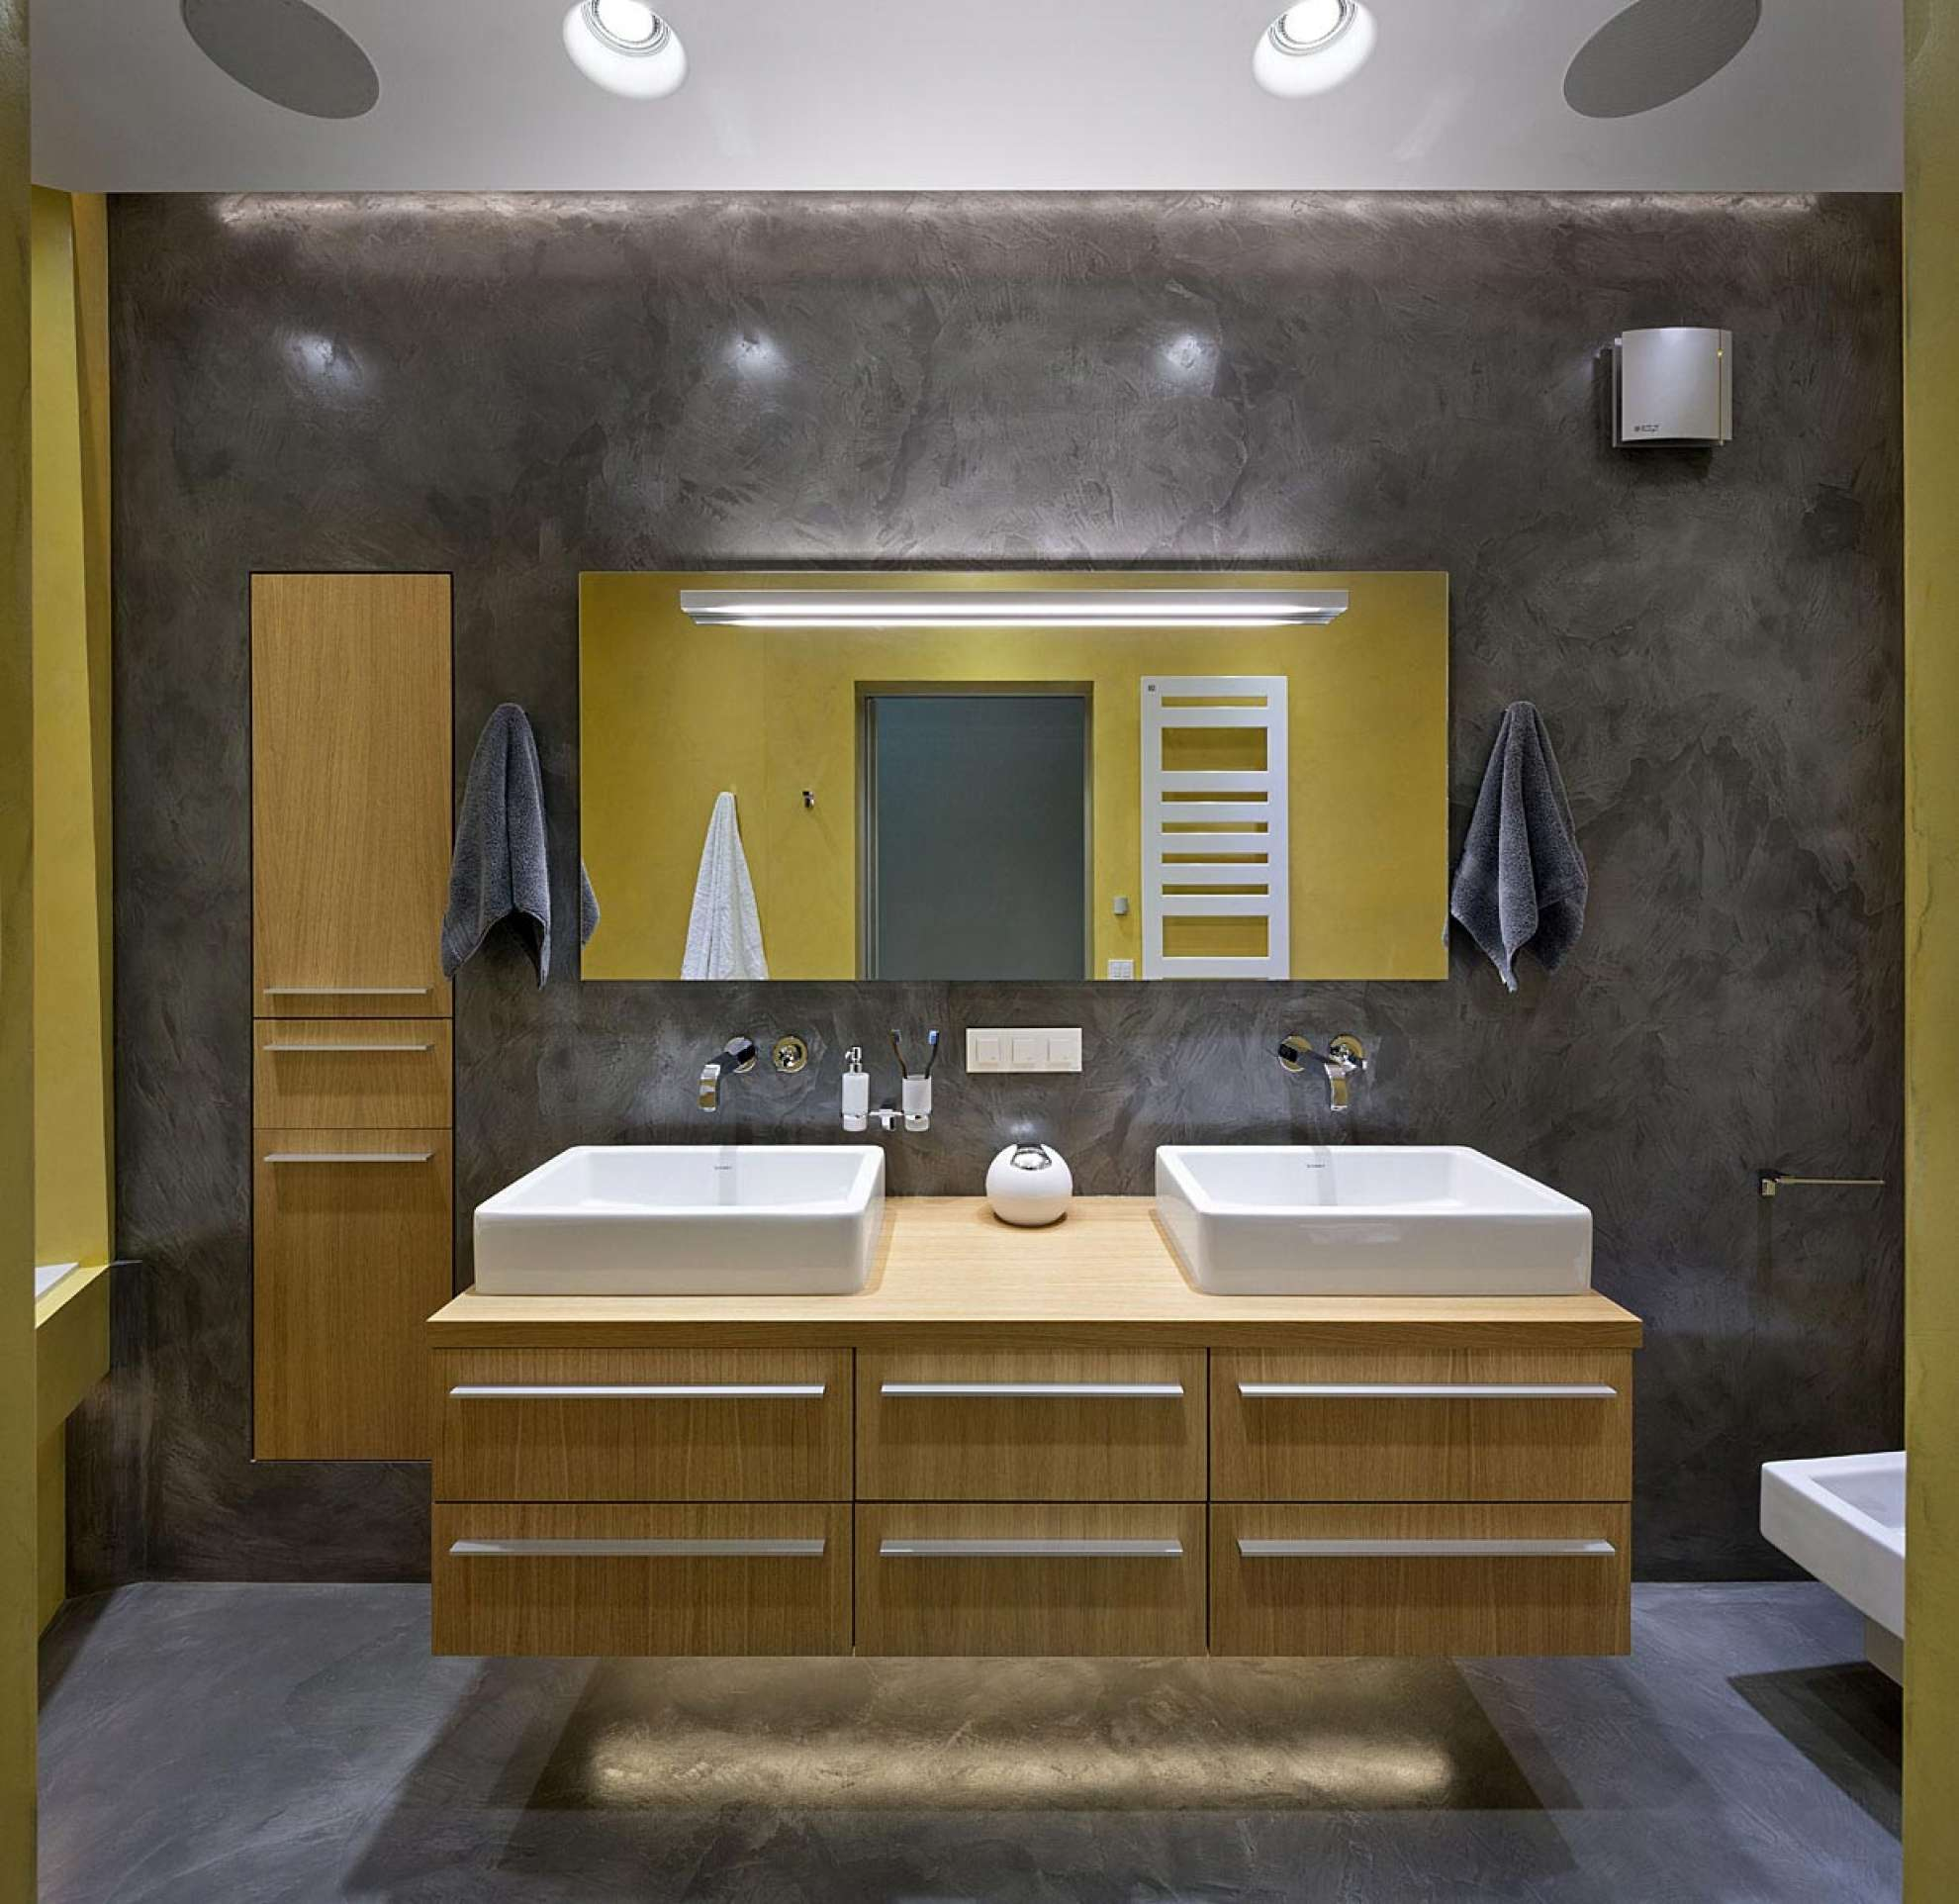 bathroom-interior.jpg